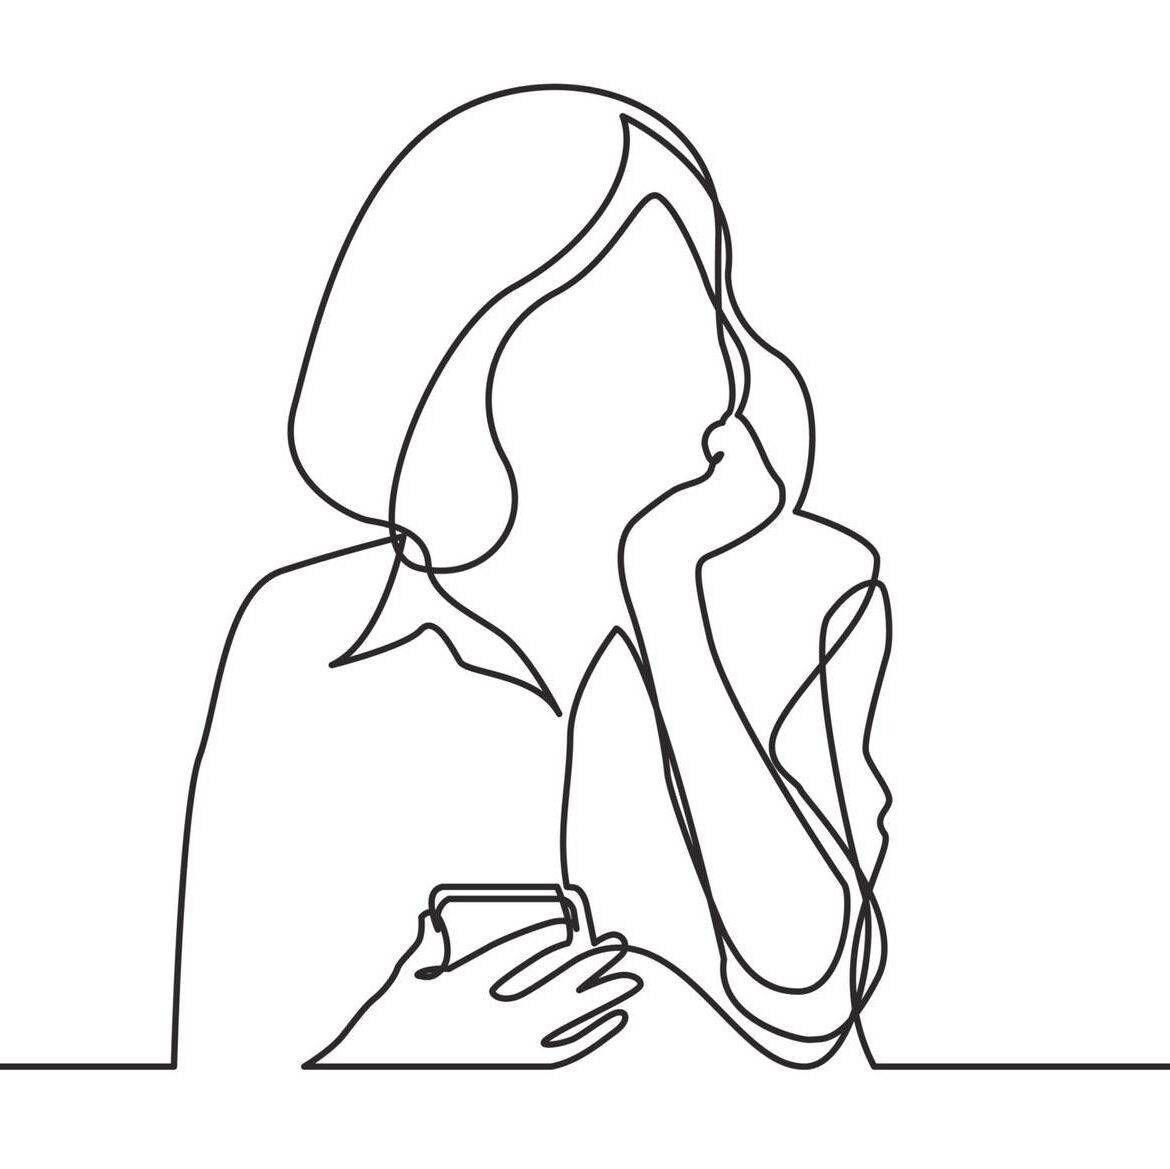 Line drawing of woman thinking with phone in hand. Rewire PBS Love Vulnerability